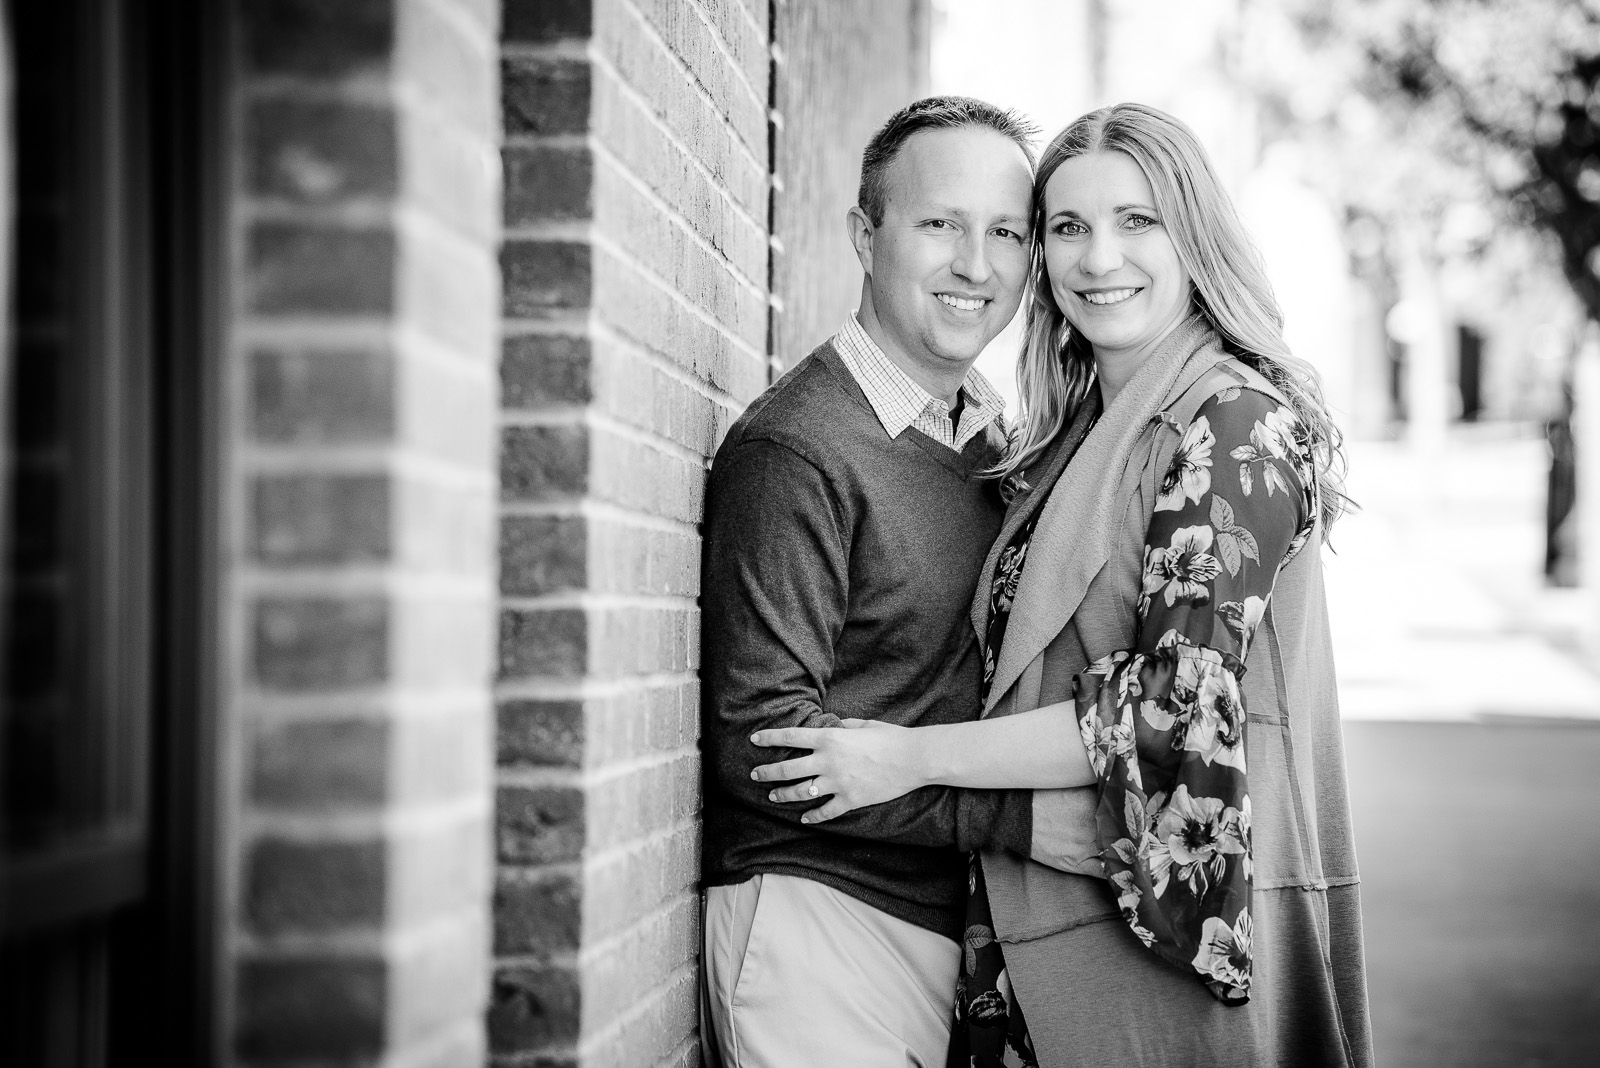 Eric_and_Christy_Photography_Blog_Megan_Nate_Engagement-21